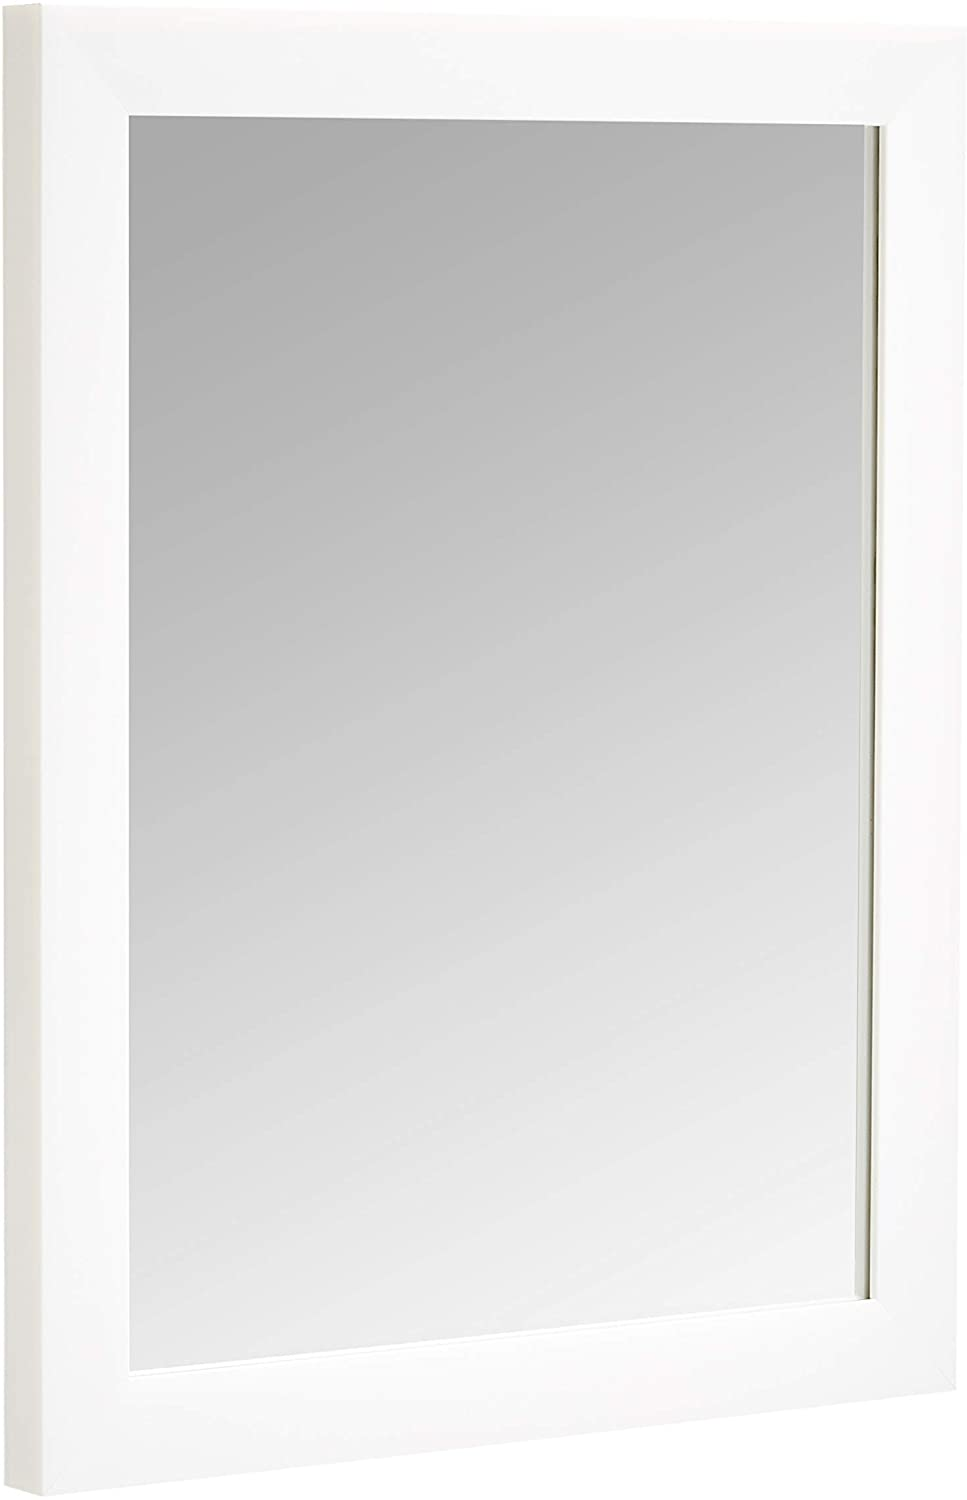 "AmazonBasics Rectangular Wall Mirror 16"" x 20"" - Standard Trim, White"